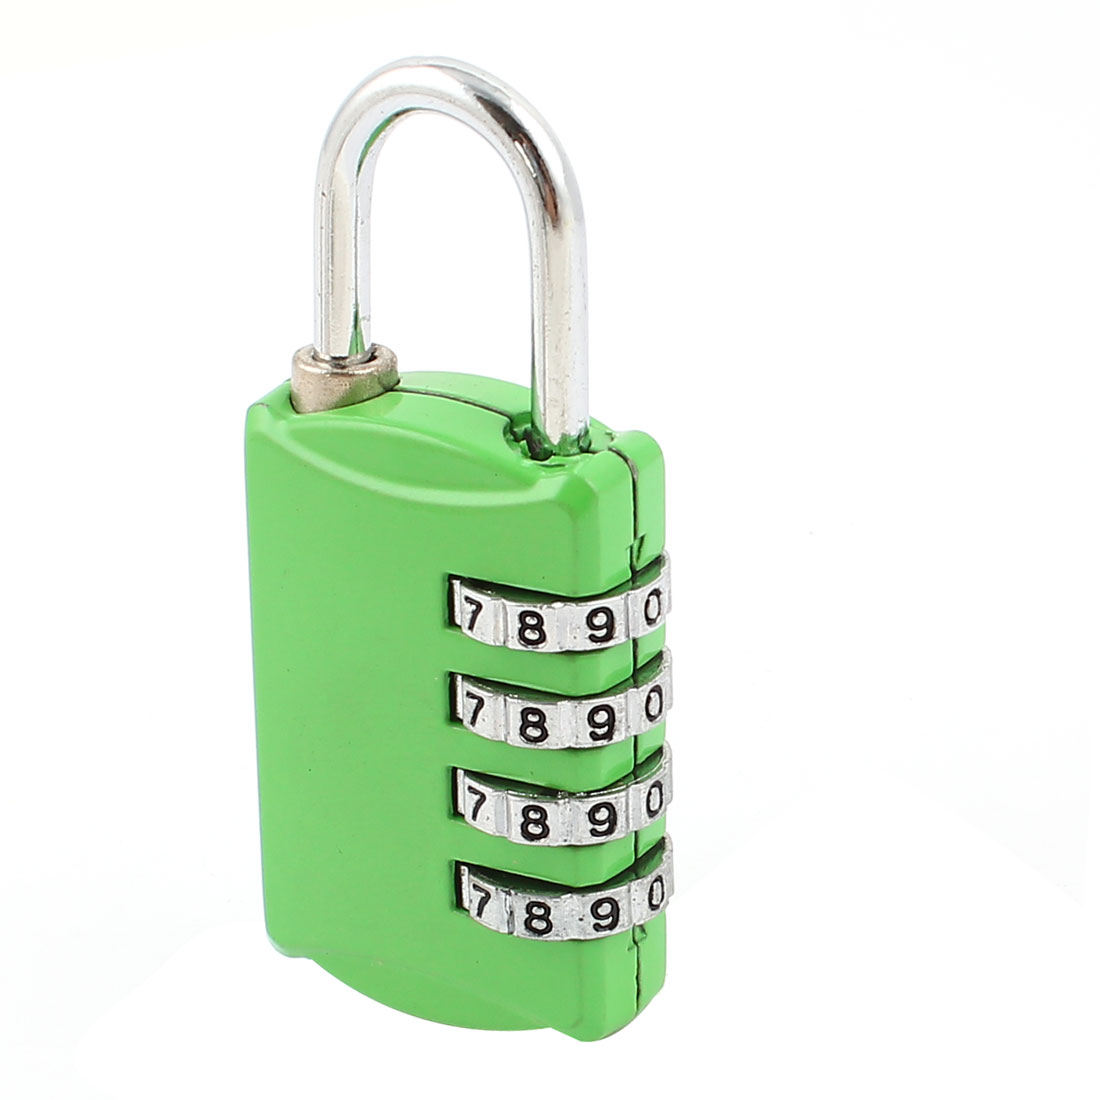 Green 4 Digital Security Resettable Luggage Combination Password Padlock Lock